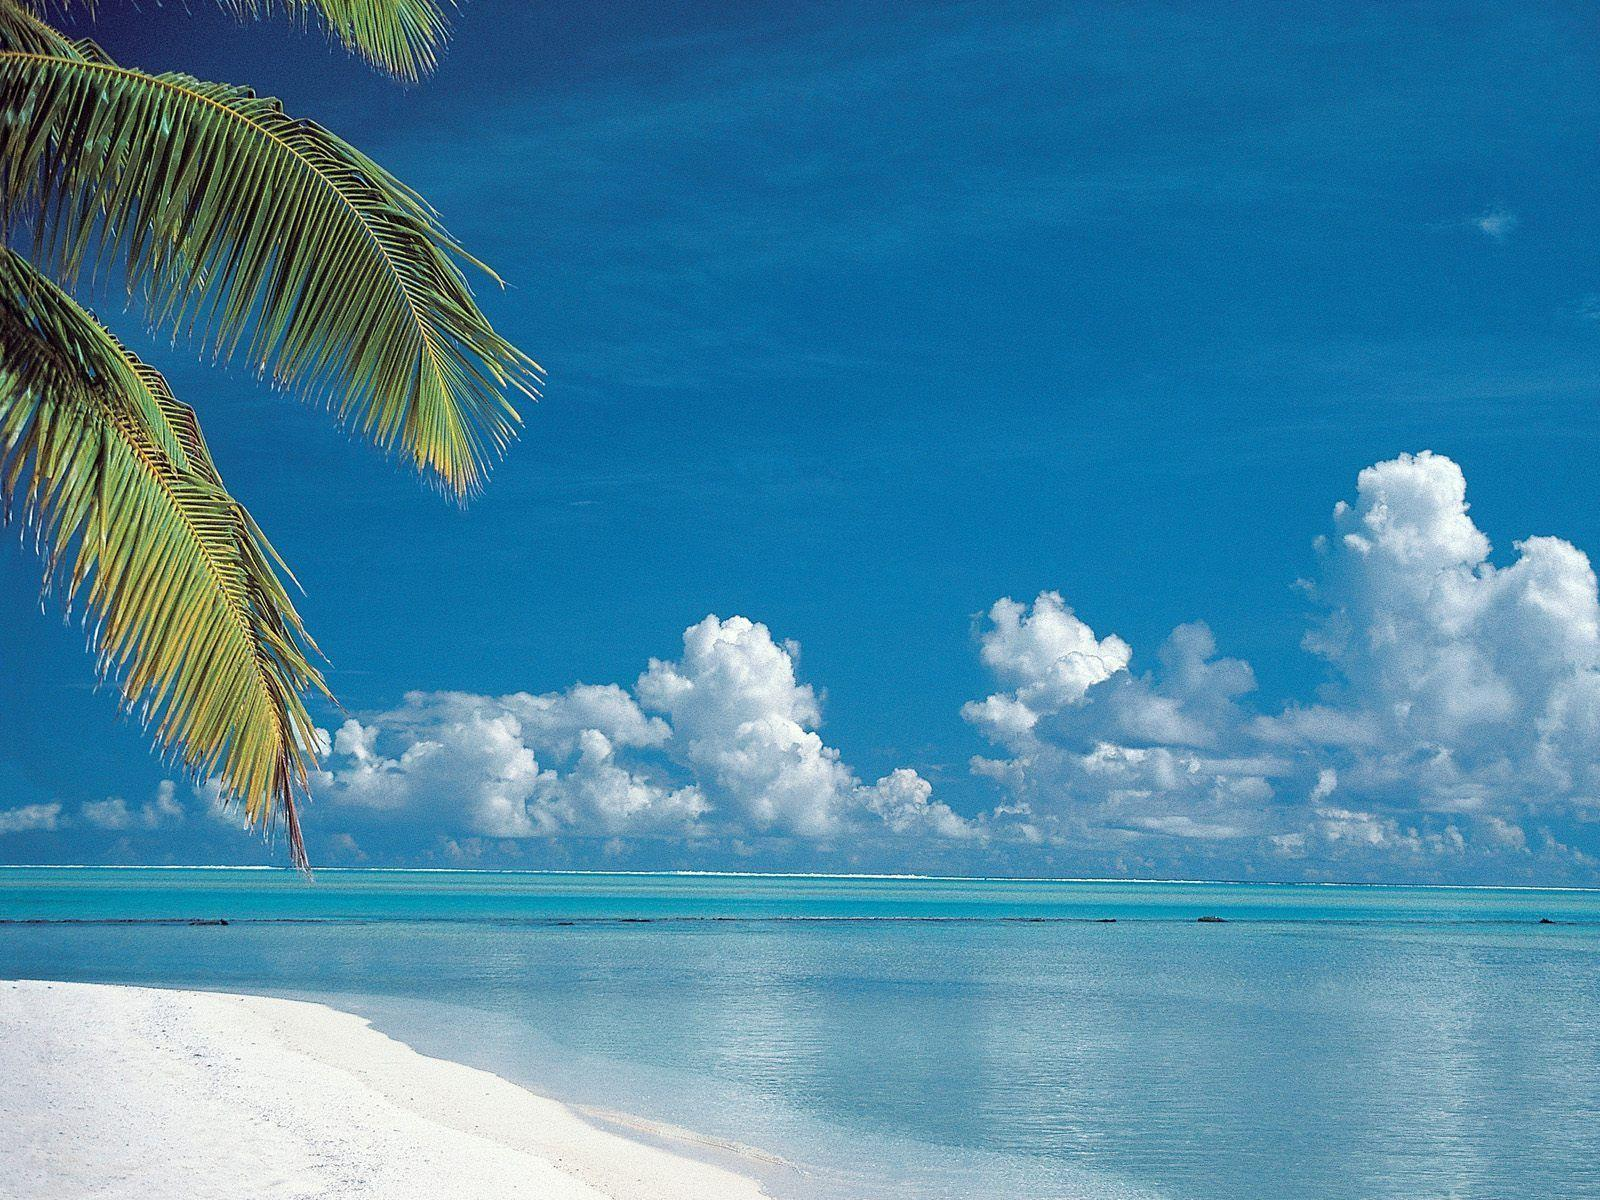 Tropical Beach Aitutaki Cook Islands Wallpapers - HD Wallpapers 78365